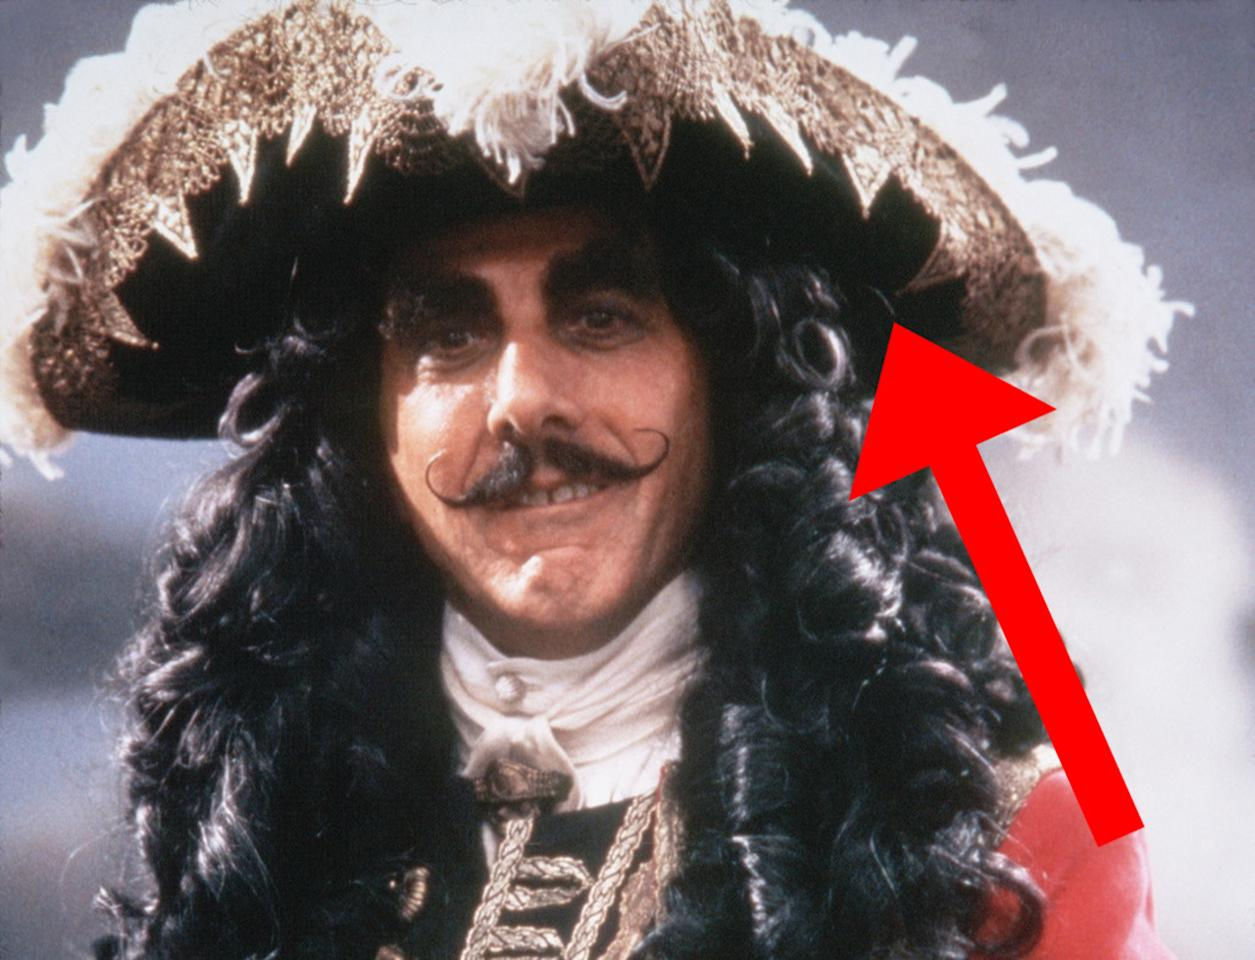 <p>The hat of Dustin Hoffman's croc-hating villain Captain Hook was designed to look like the encroaching jaws of a killer crocodile.</p>